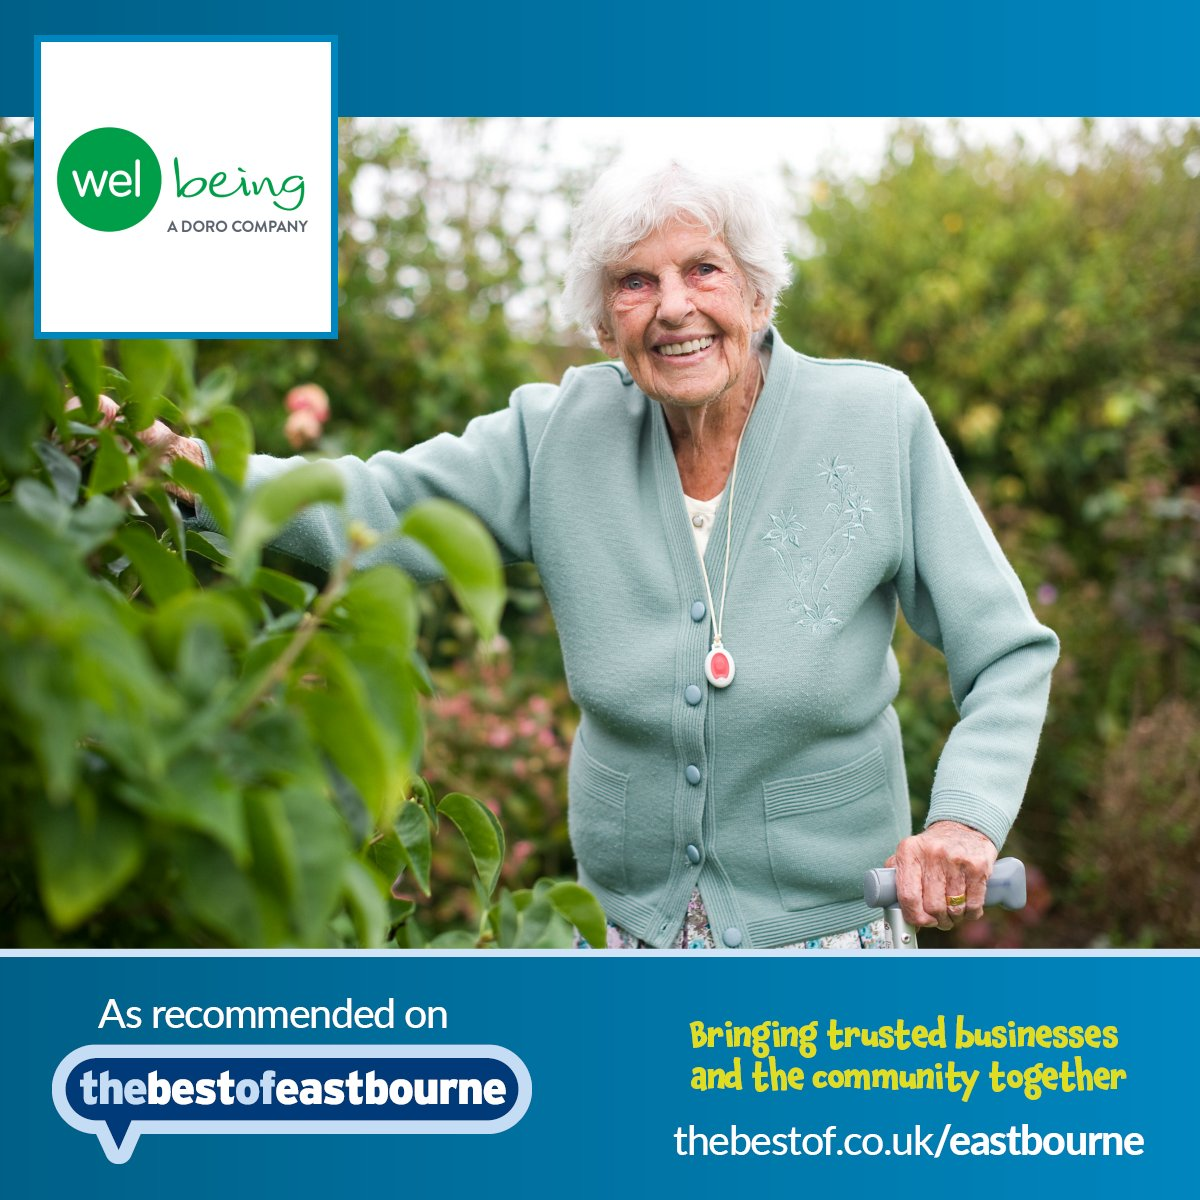 #MeetTheMember  - Welbeing helps all members of the community, particularly those who are elderly and vulnerable, to live and work in a secure environment with their #TeleCare  and #TeleHealth  solutions.  Find their details on #BestOfEastbourne   http://j.mp/1OBAsVp